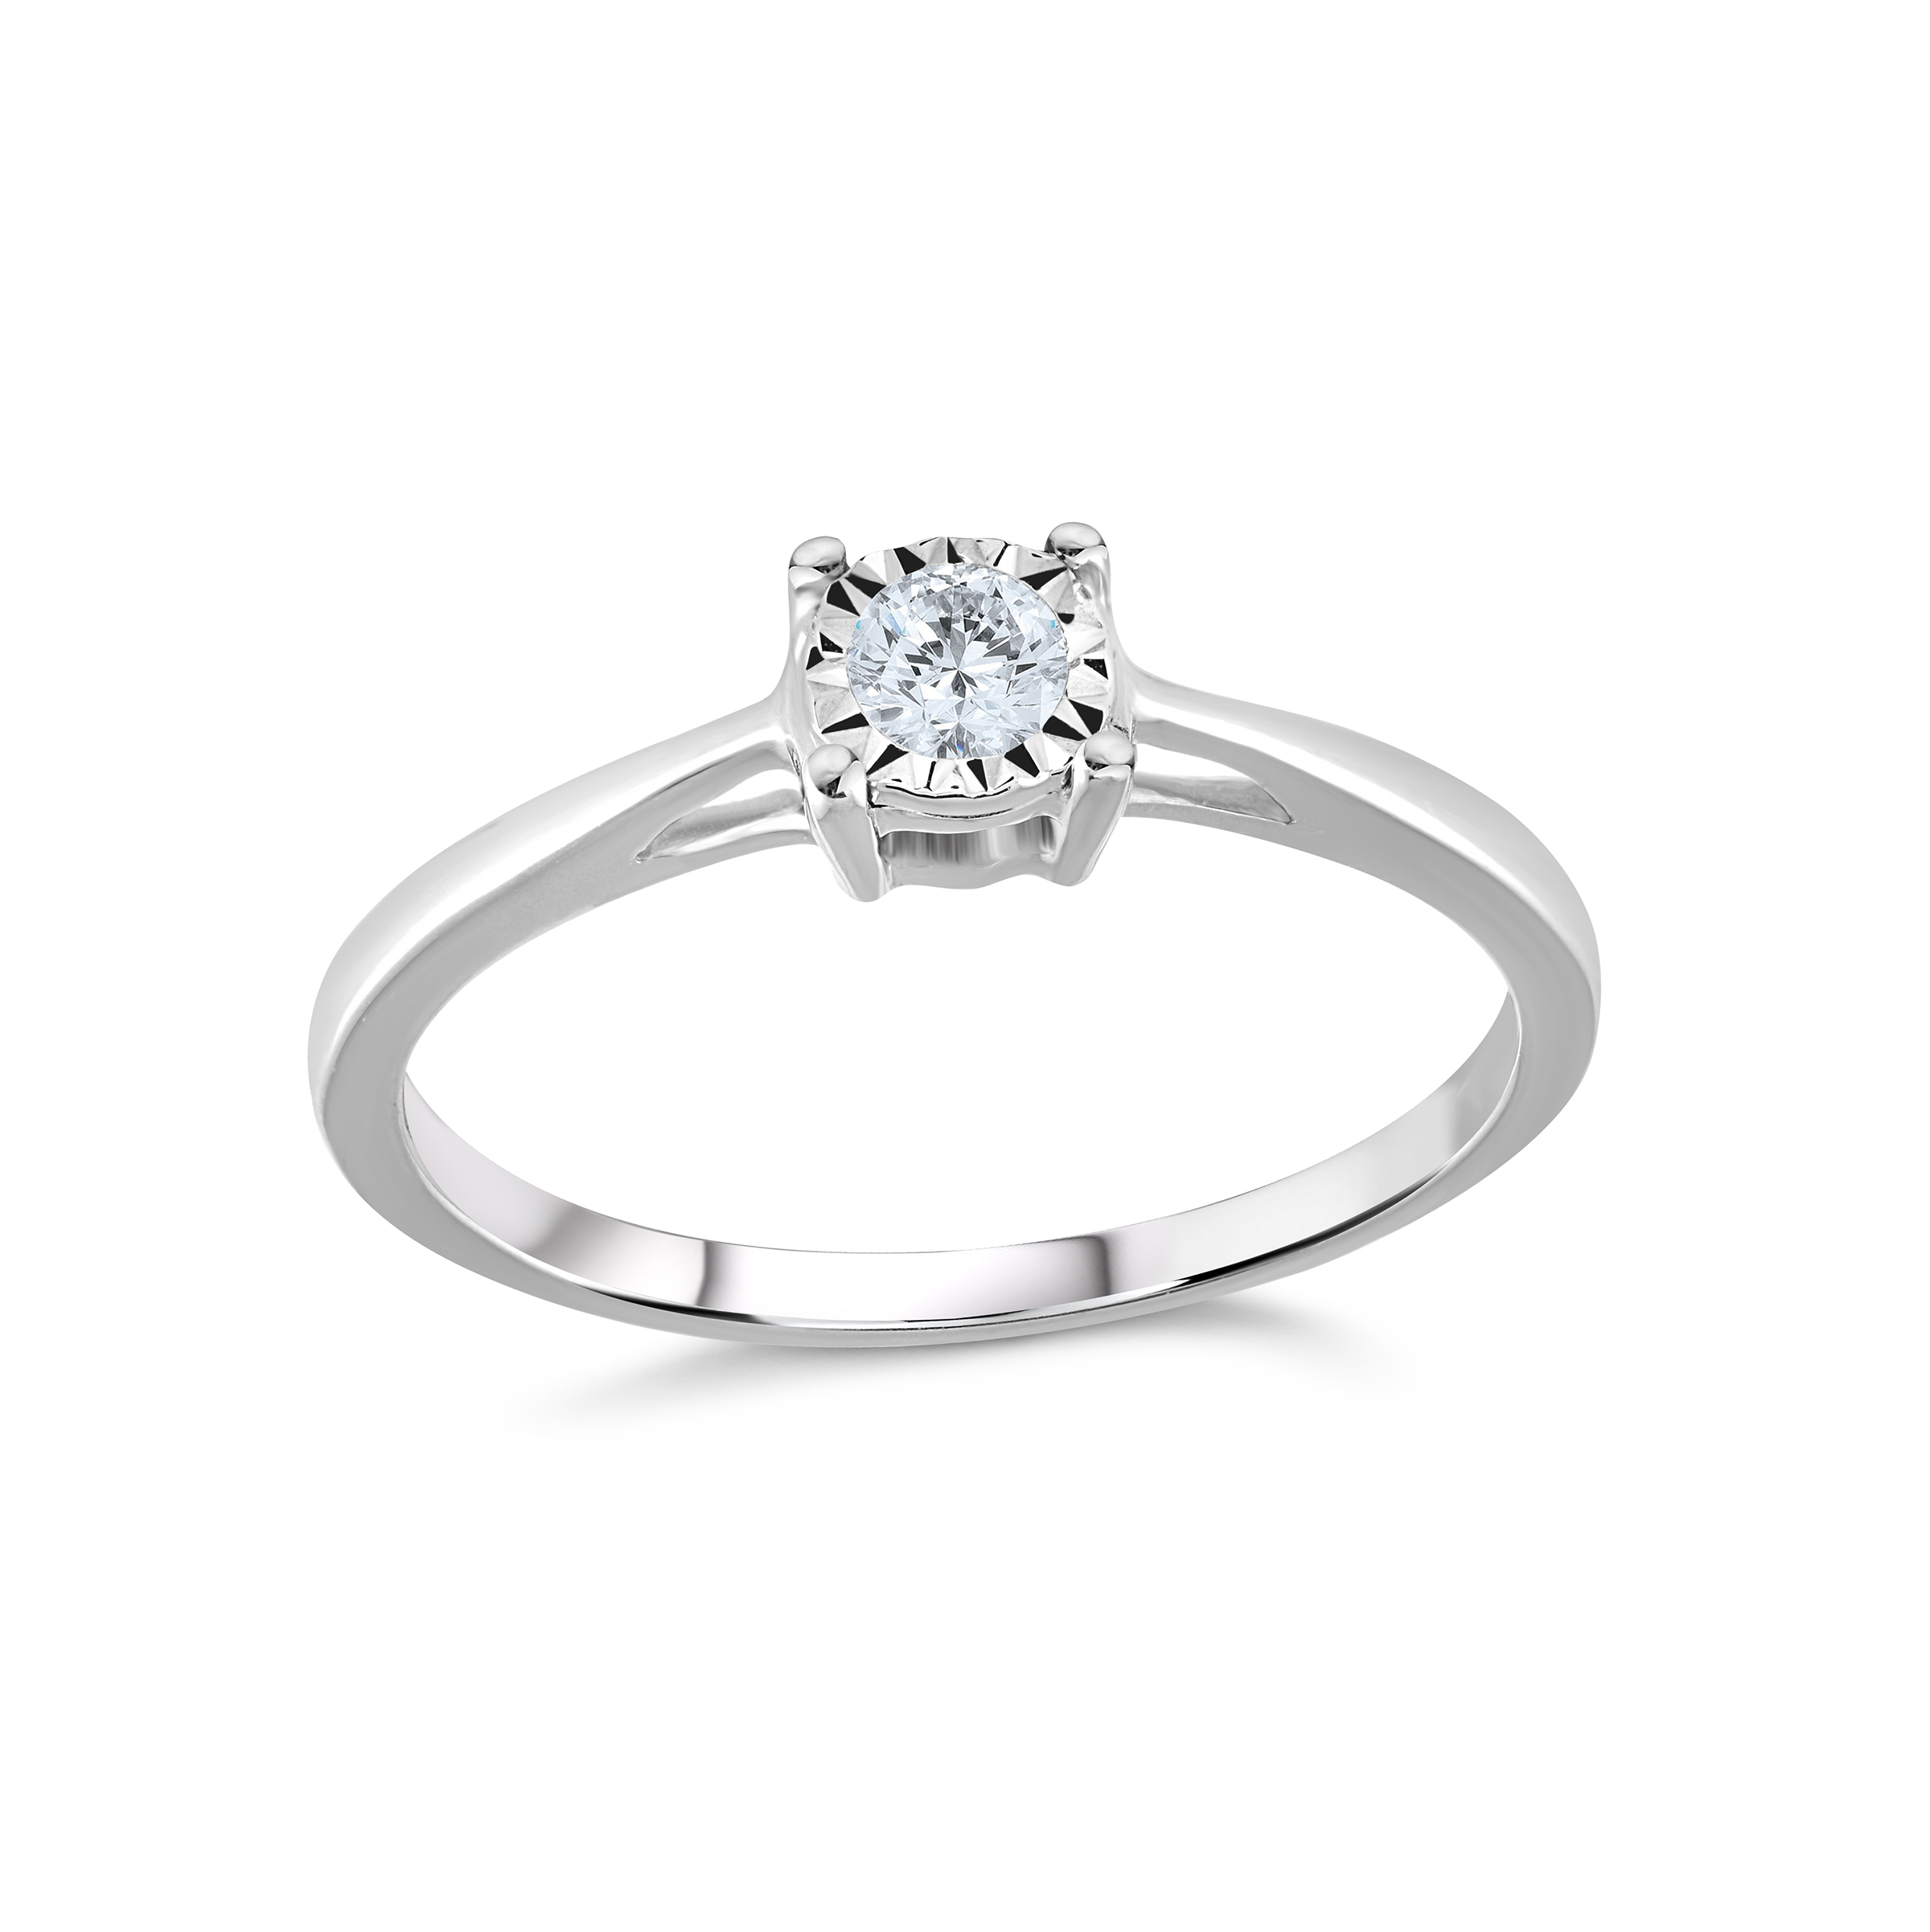 Engagement ring - 10K white Gold & Solitaire diamond 0.15 Carat T.W.